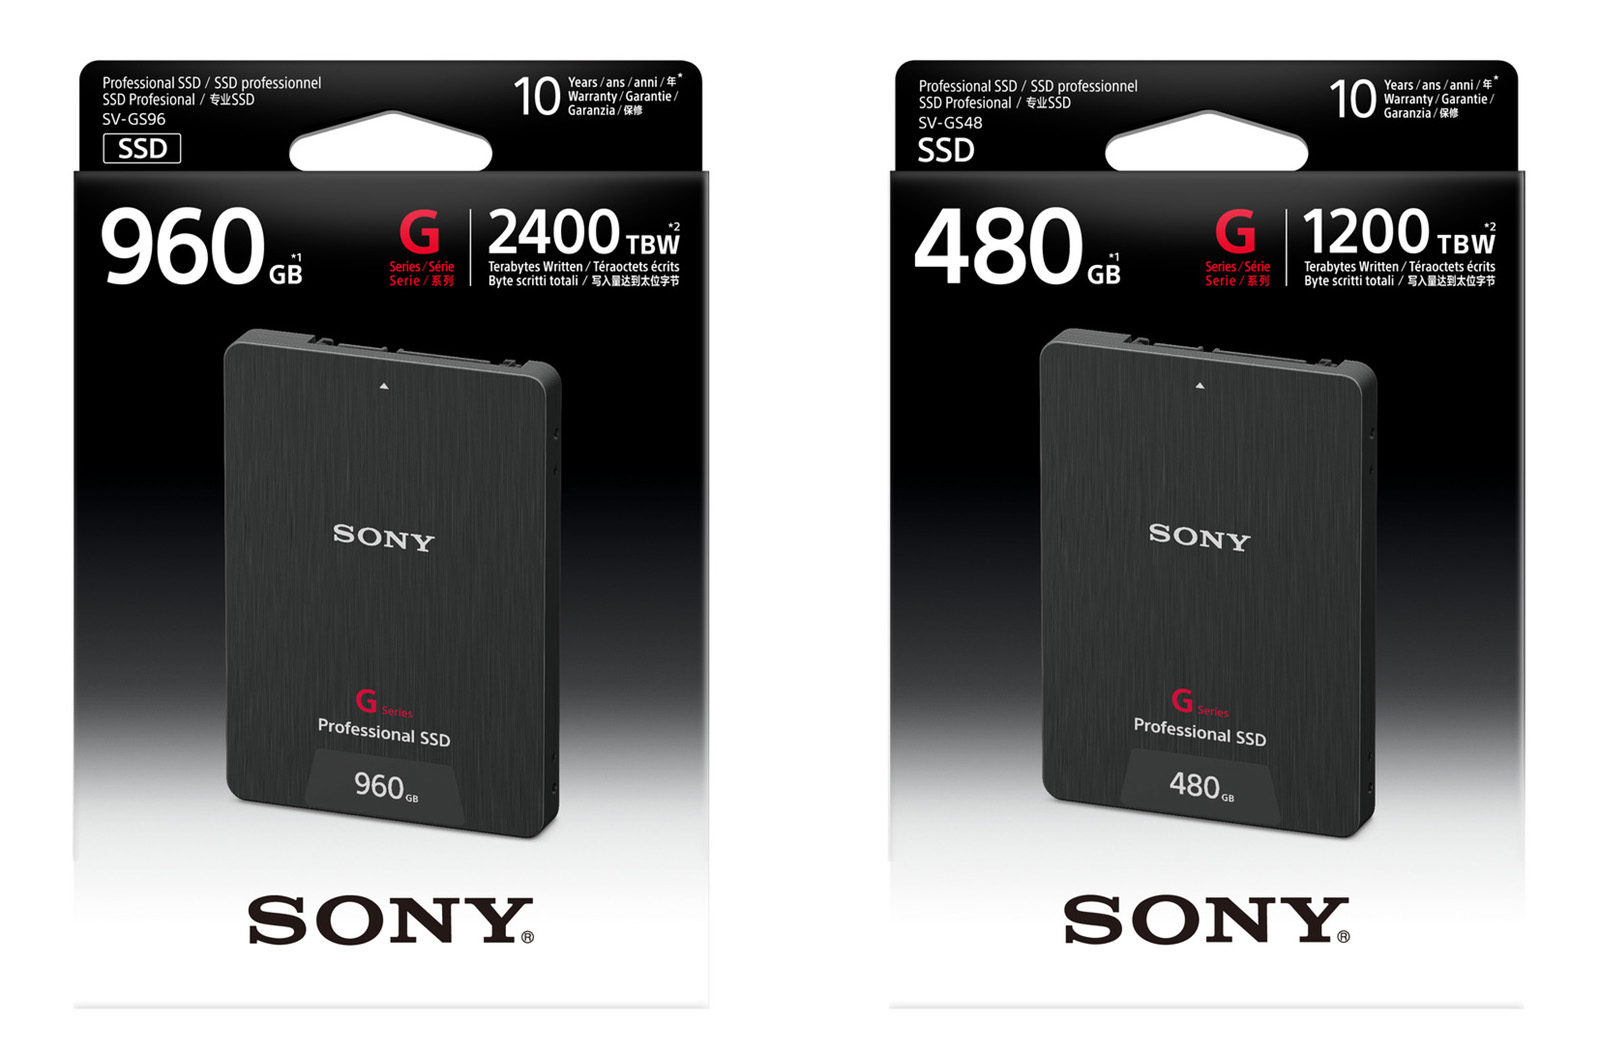 Sony Aims Tough SSDs at 4K Video